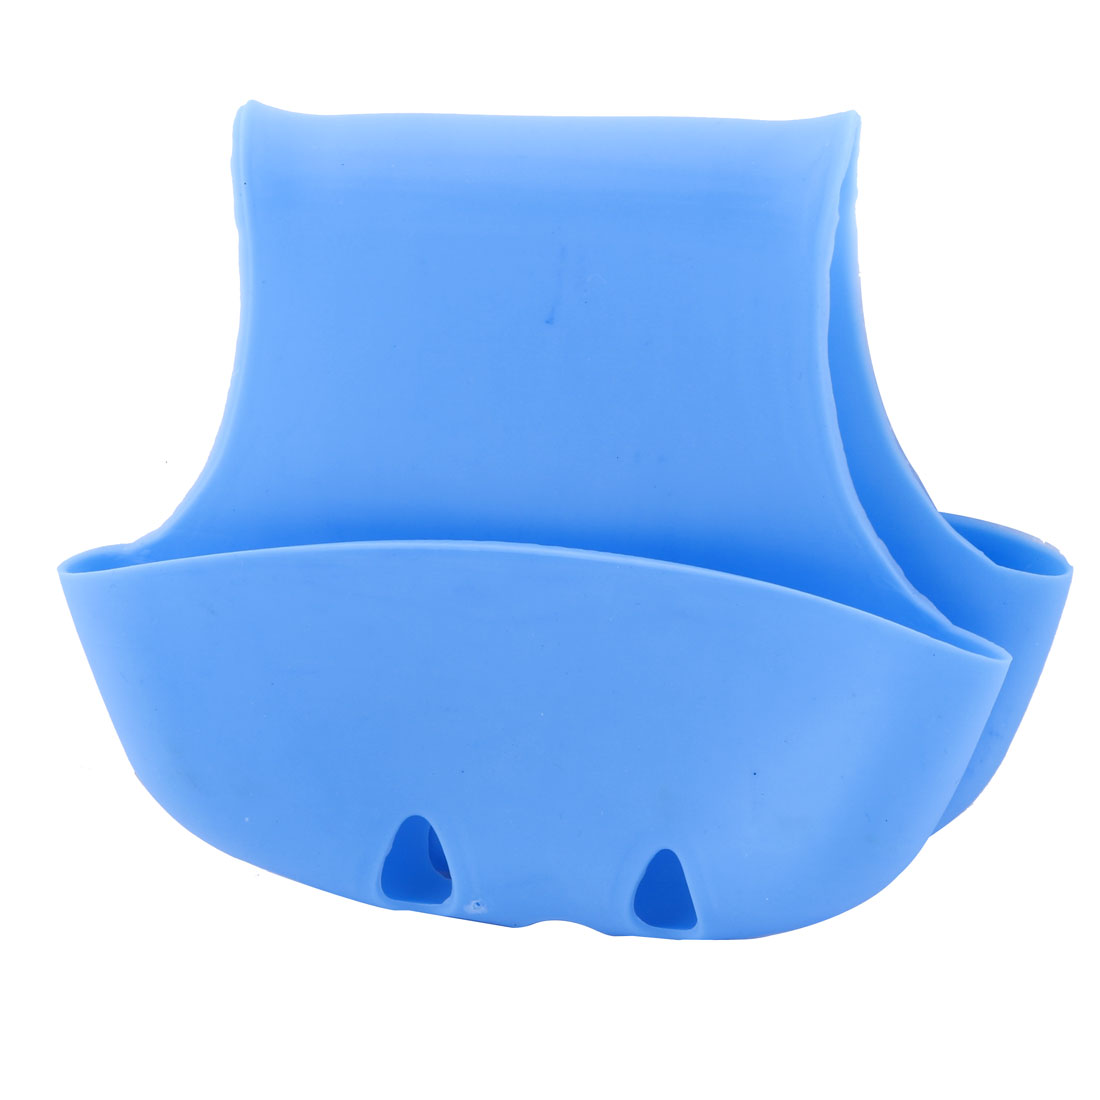 Saddle Style Sink Faucet Dish Washing Tool Sponge Drainer Holder Basket Blue